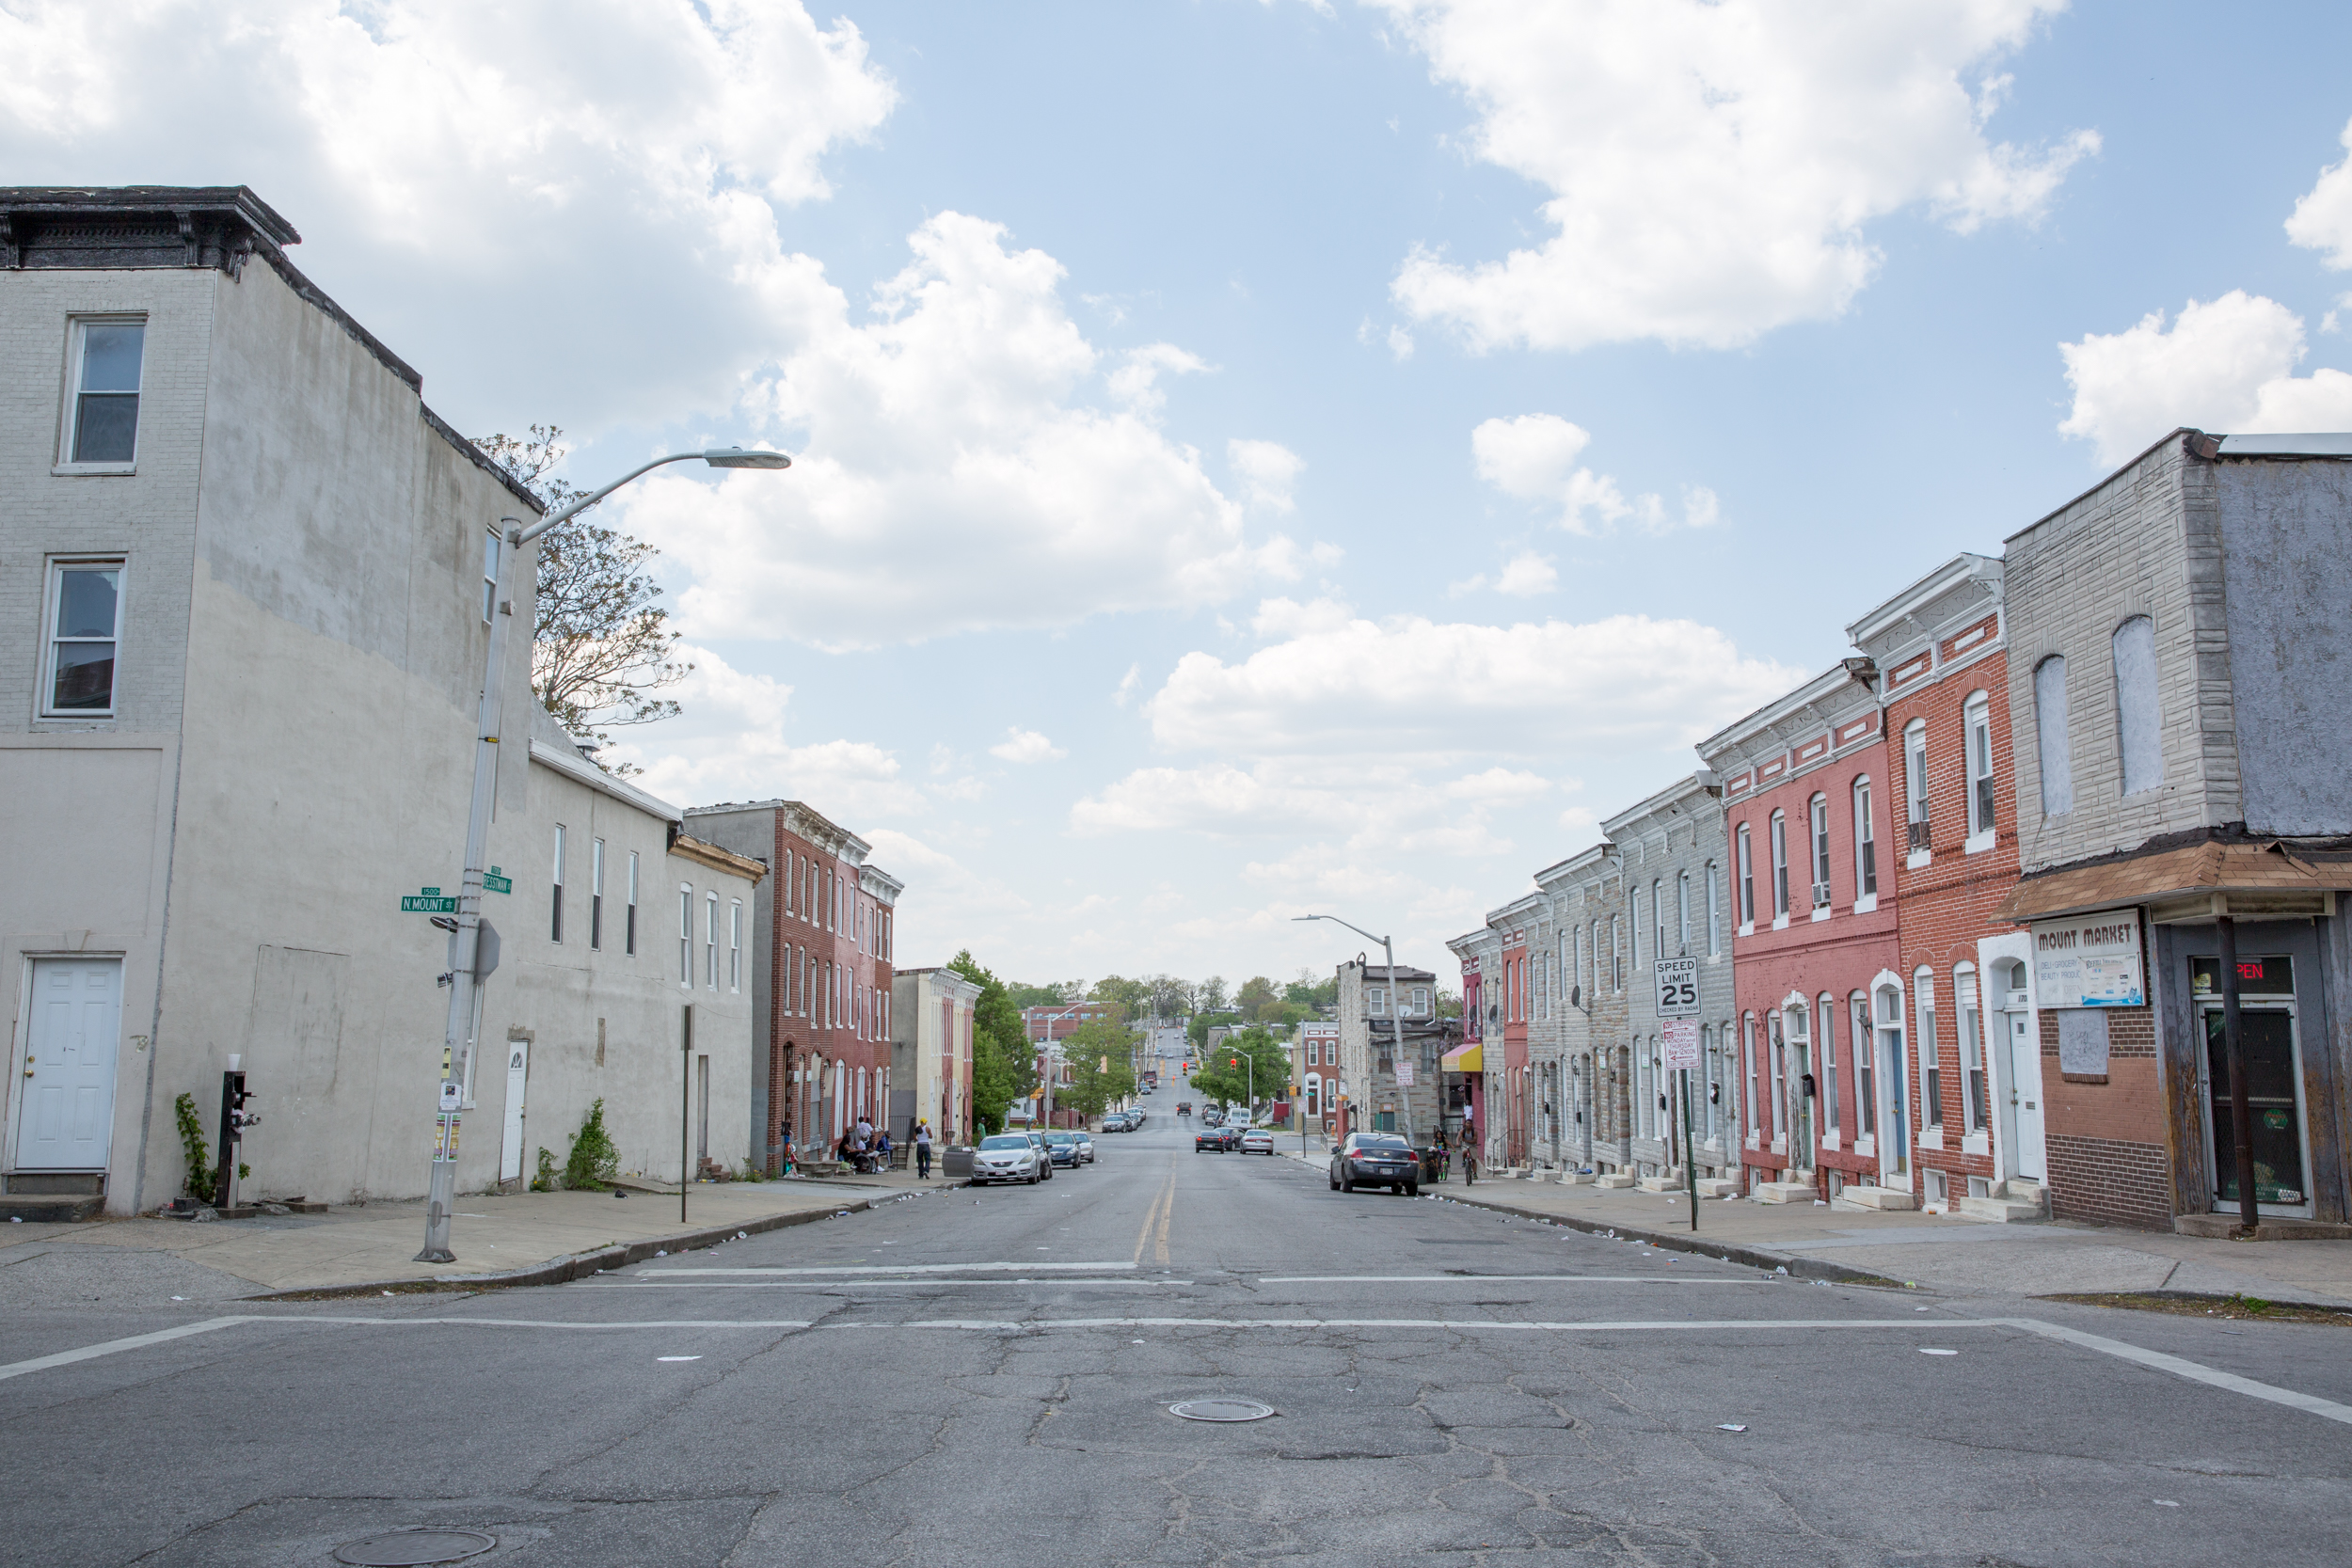 The intersection of N Mount and Presstman streets, an archetypically Baltimore row of houses.